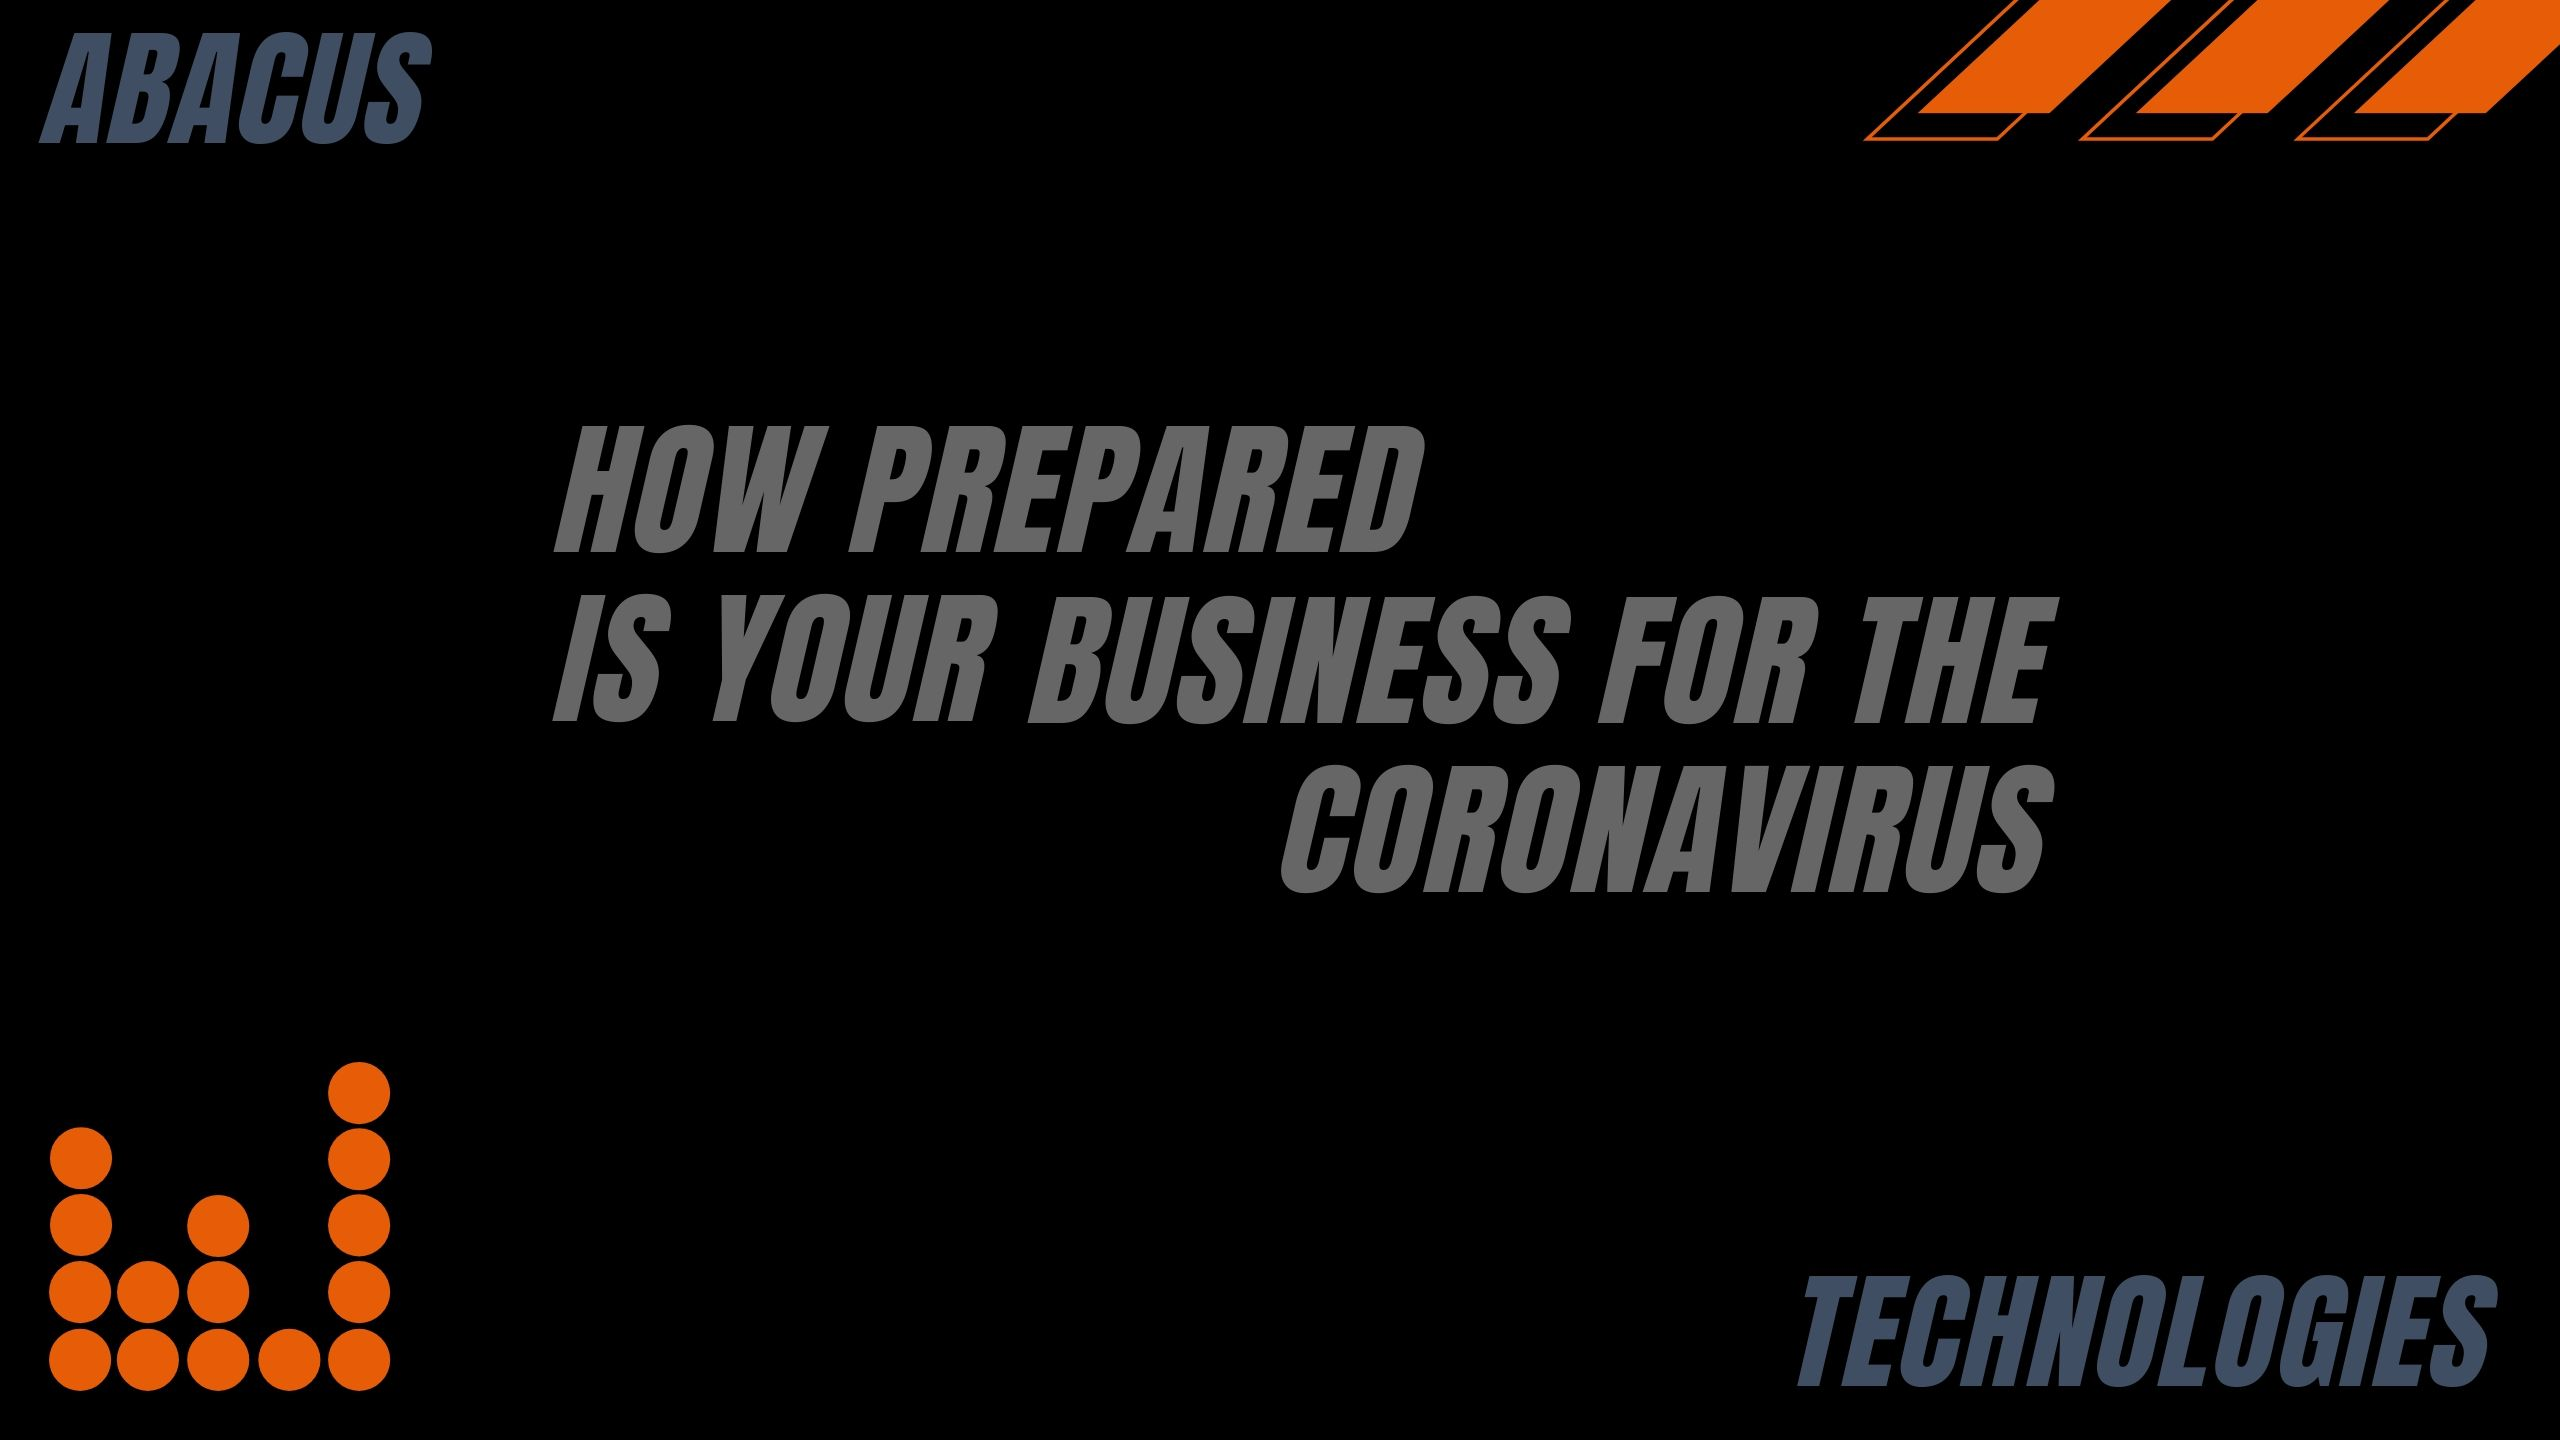 How Prepared is Your Business for Coronavirus?